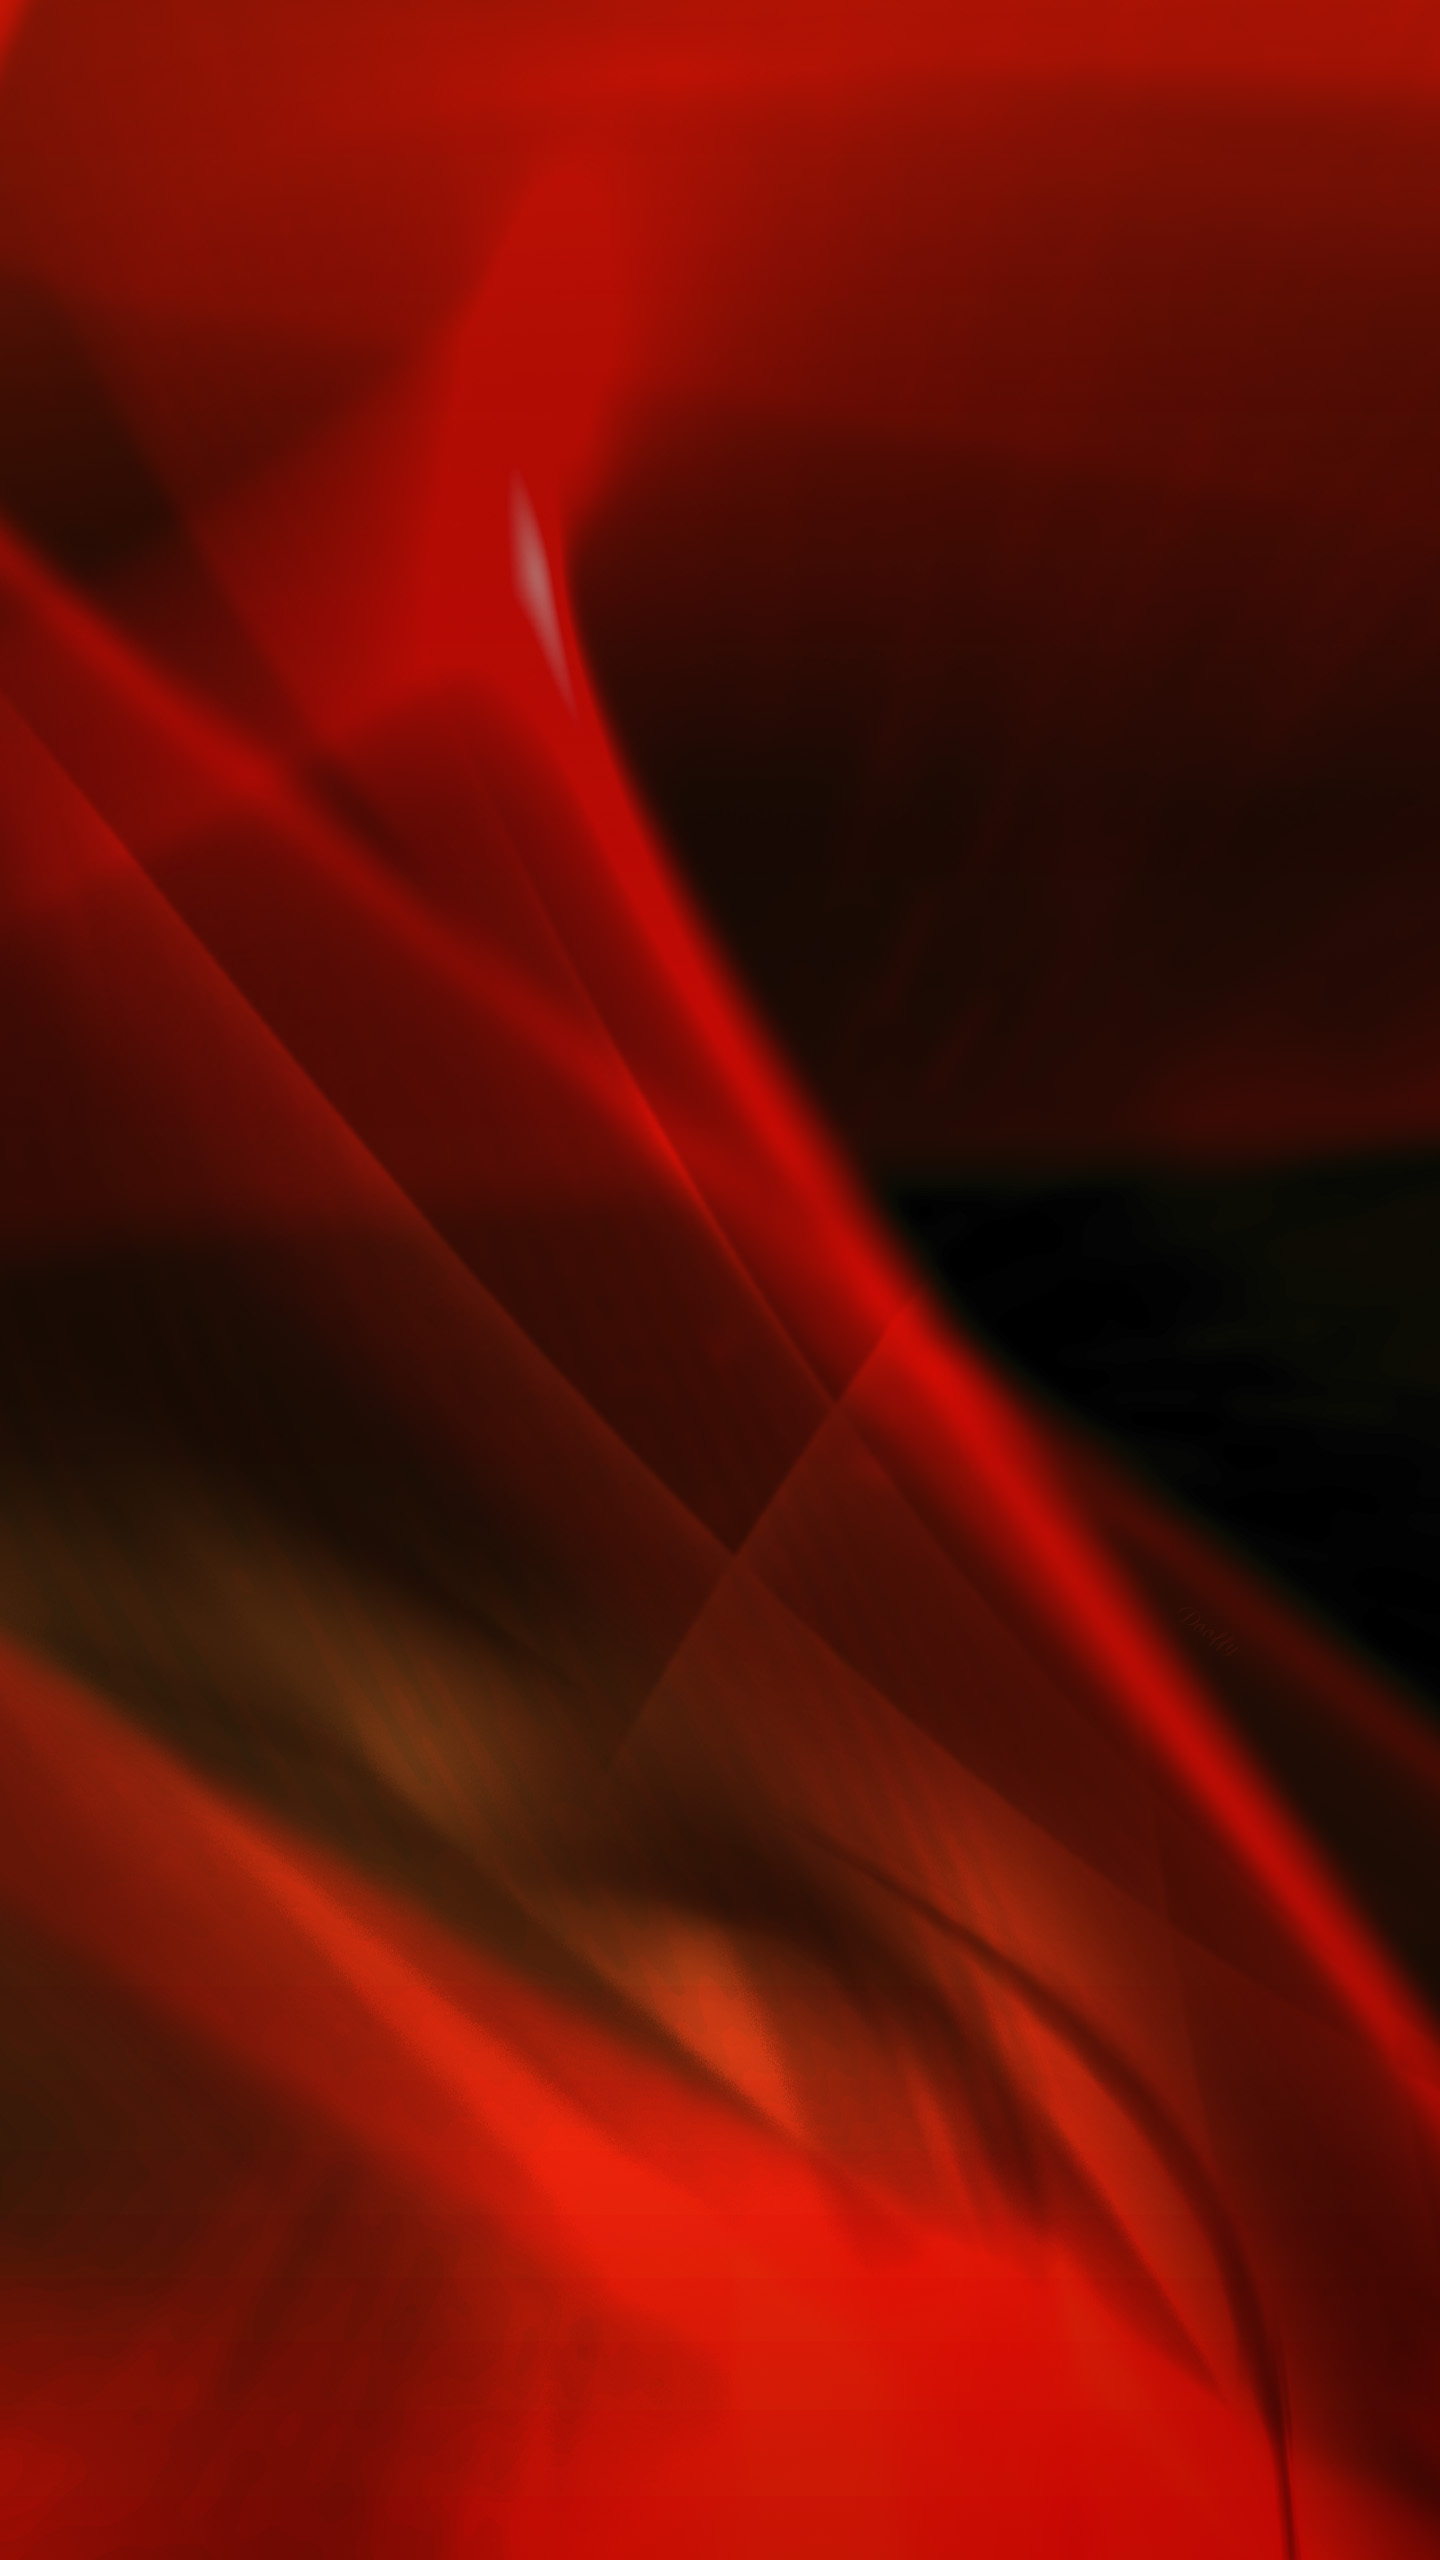 Wallpaper Samsung Galaxy S6 Red Wave By Dooffy By Dooffy